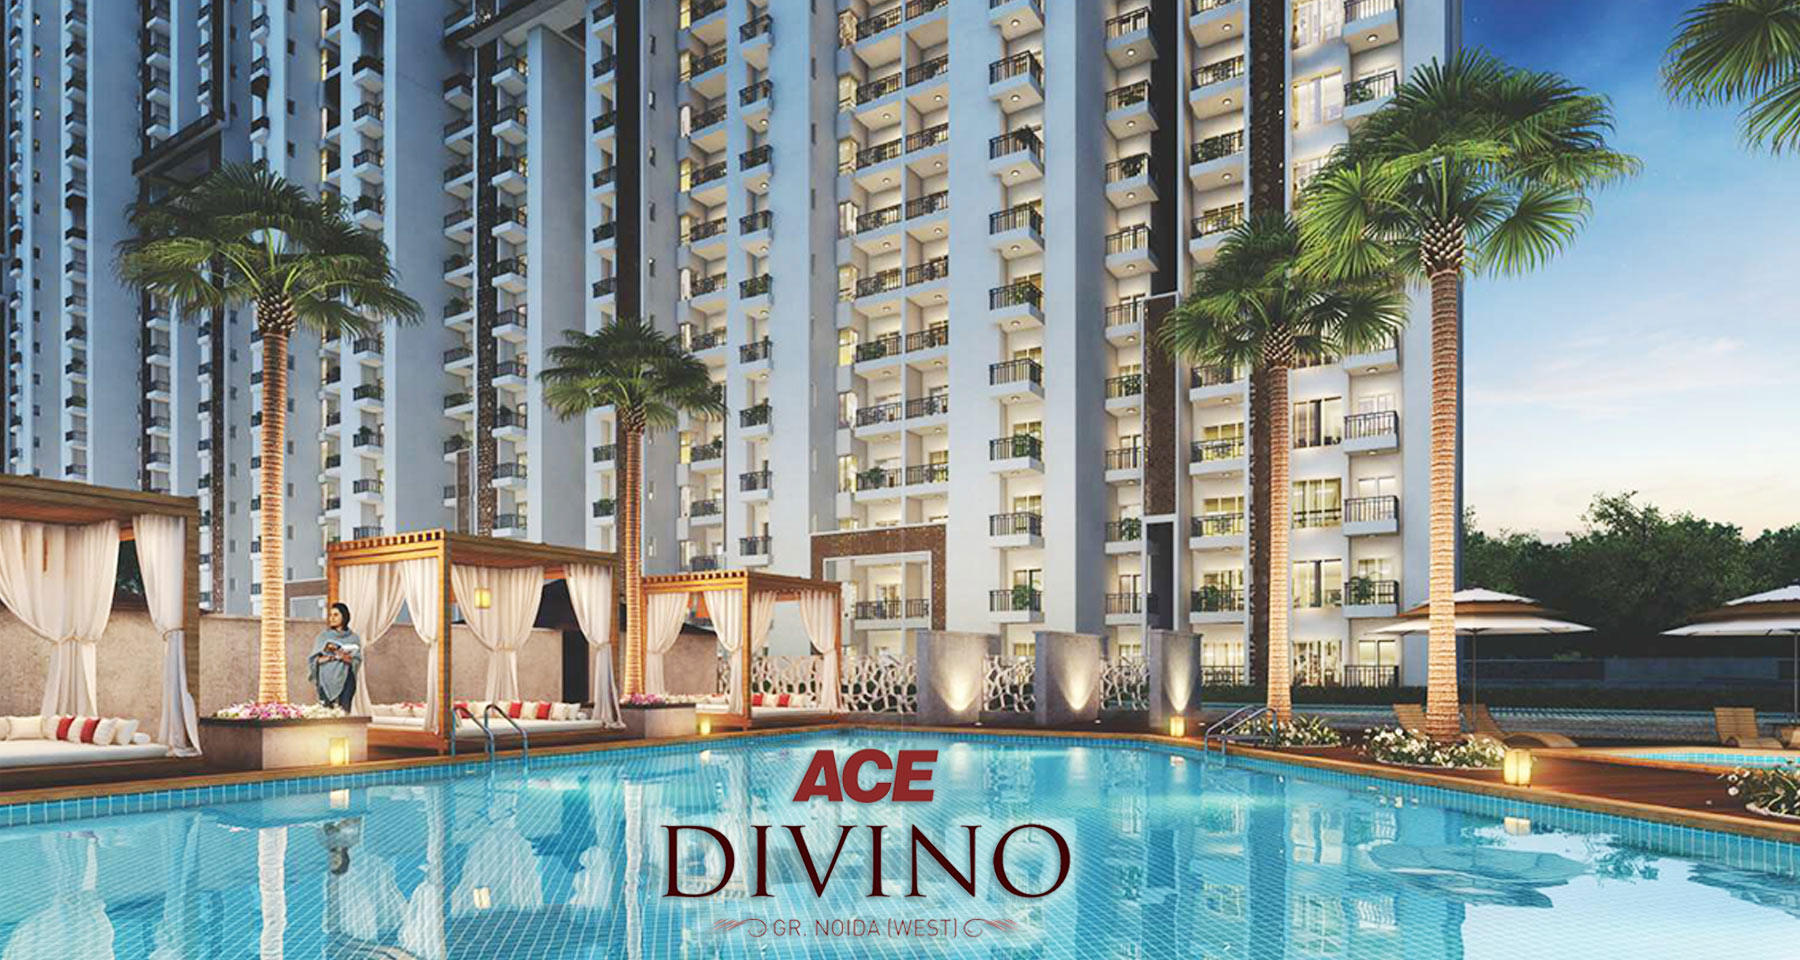 Give Your Family a Space to Enjoy the Grandeur @ ACE Divino